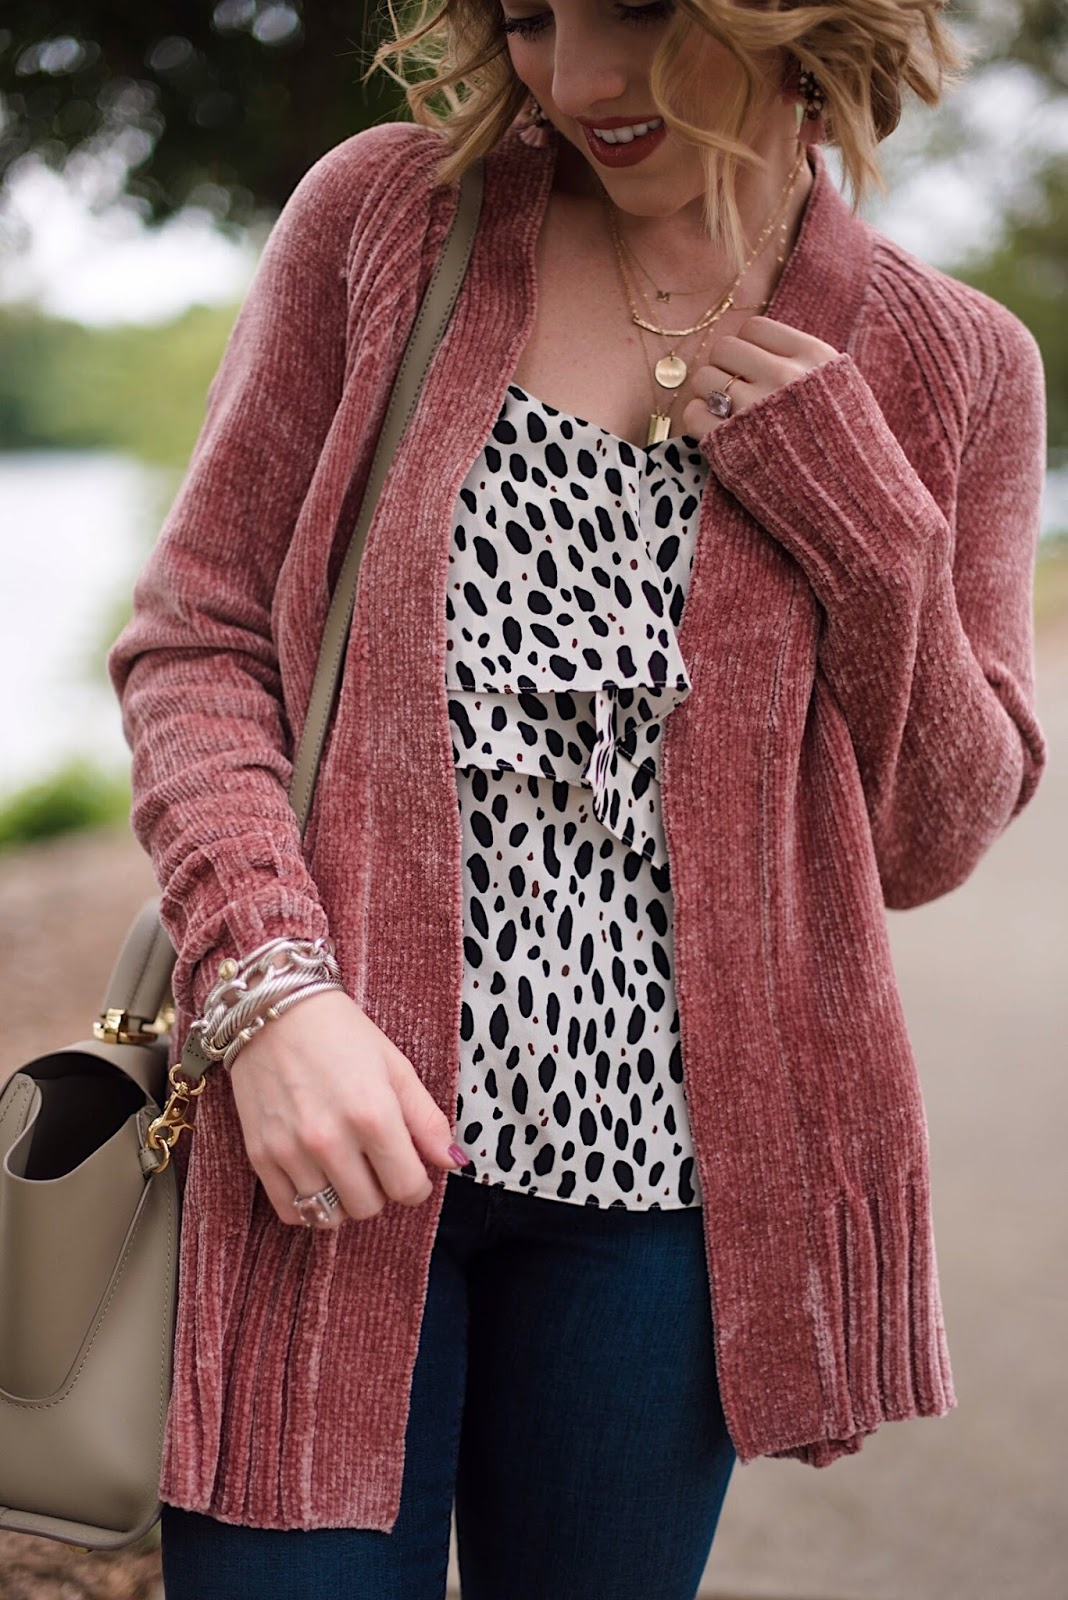 Cozy Cardigan for Fall in Dusty Rose - Something Delightful Blog